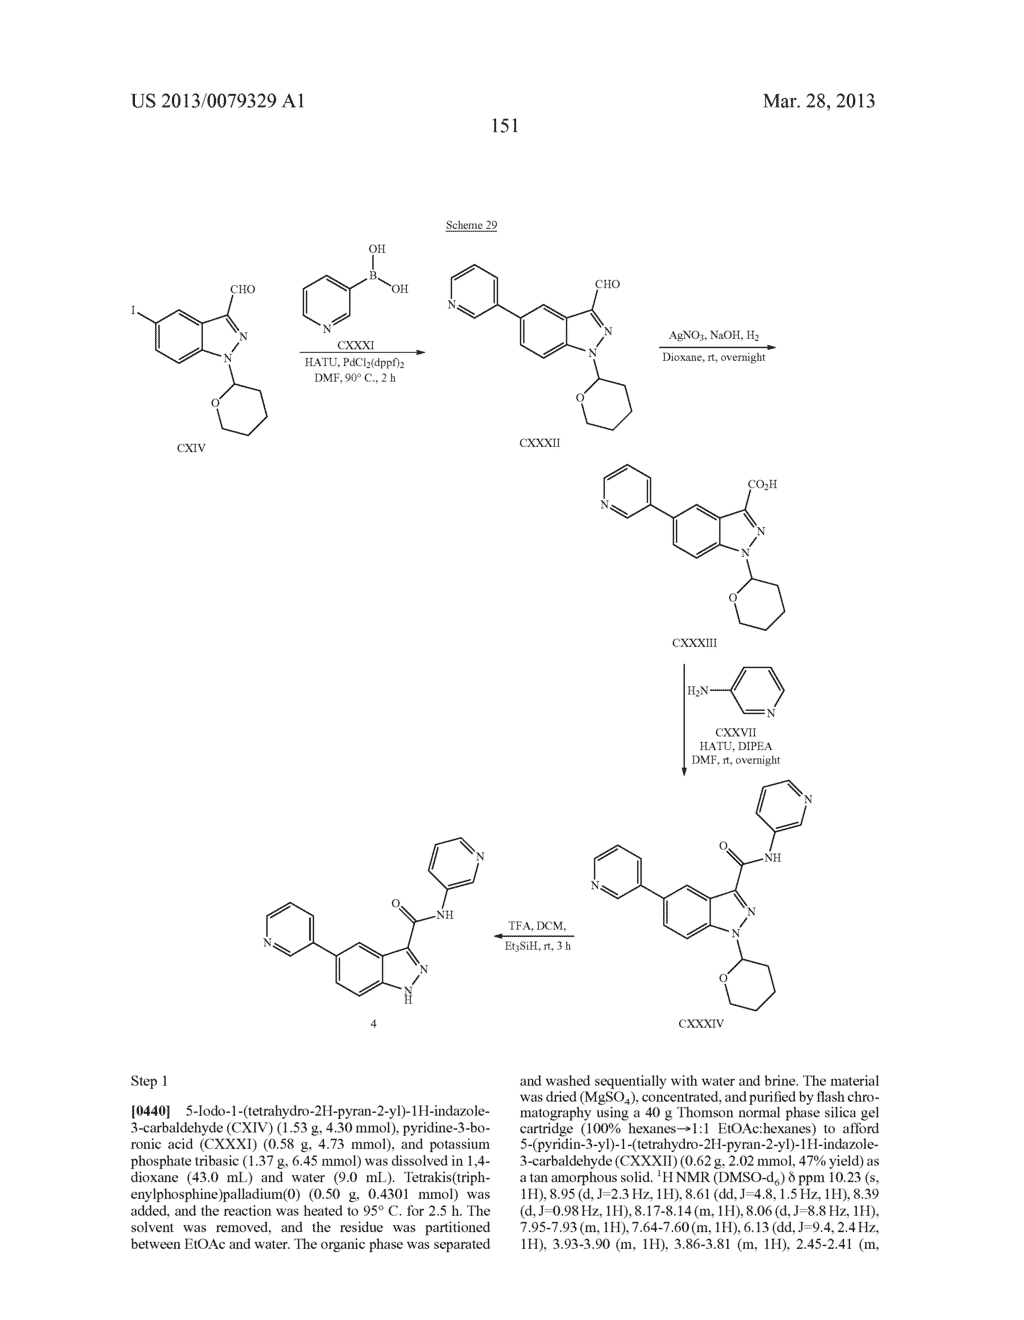 INDAZOLE-3-CARBOXAMIDES AND THEIR USE AS WNT/Beta-CATENIN SIGNALING     PATHWAY INHIBITORS - diagram, schematic, and image 152